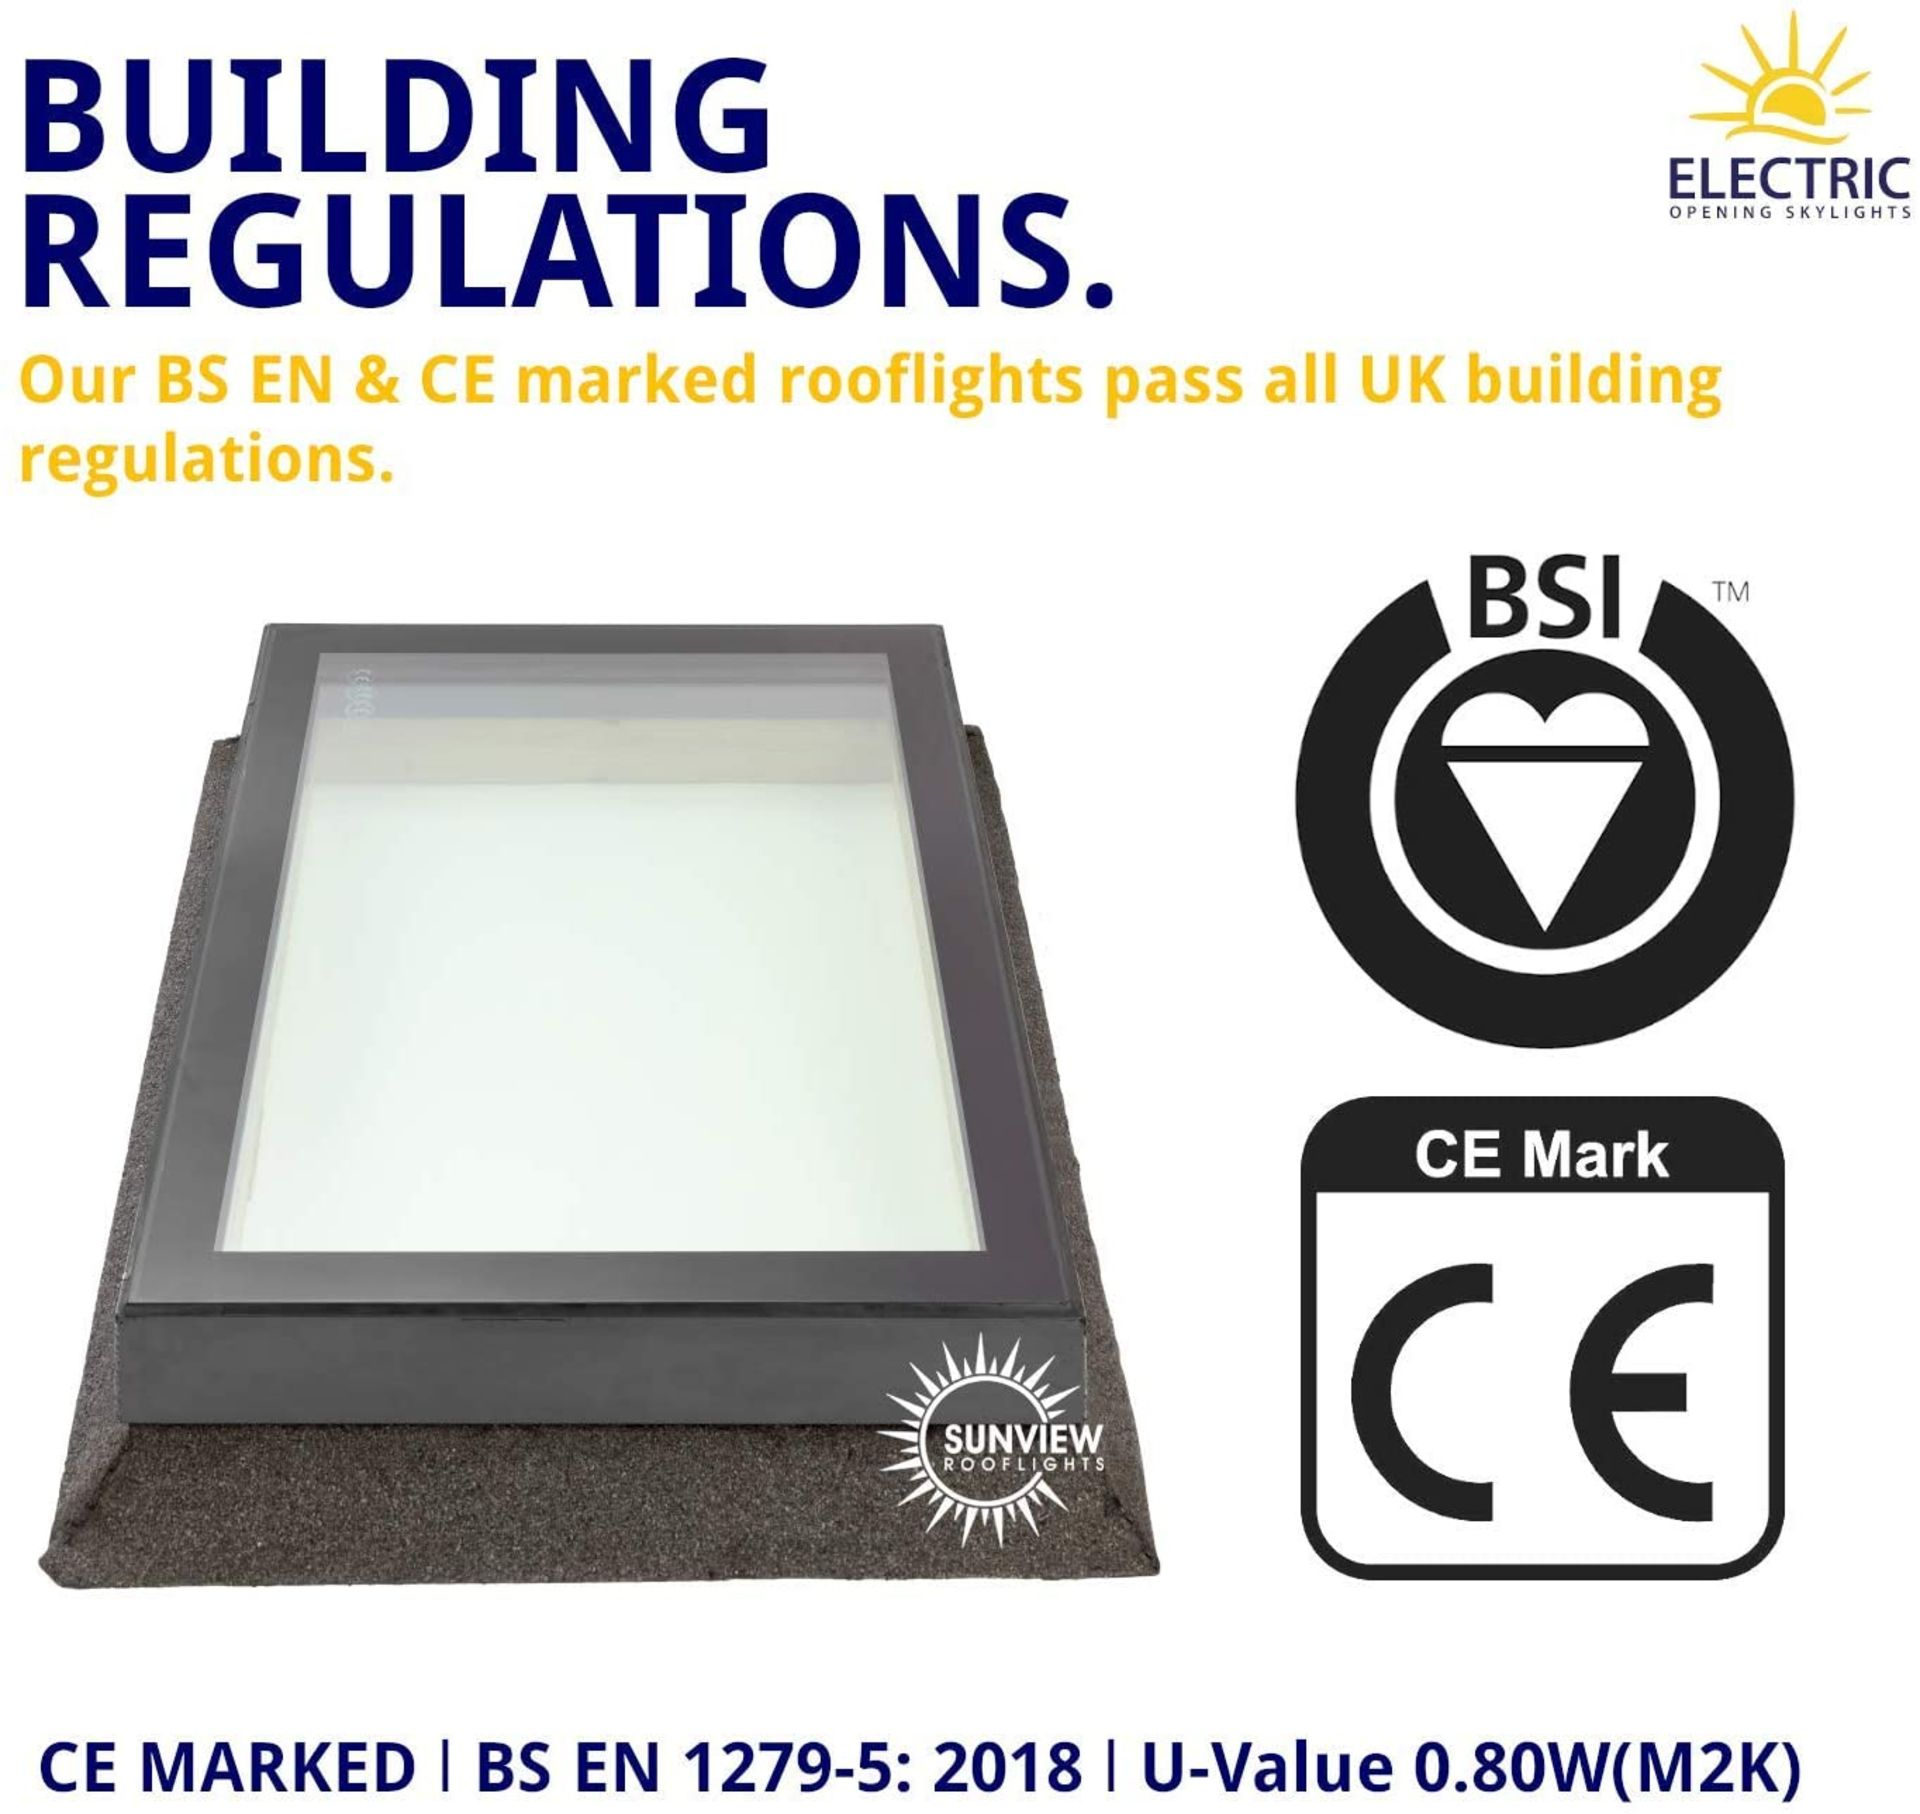 Panoroof (EOS) Fixed Aluminium Triple-Glazed Laminated Skylight with Self-Cleaning Glass - 800x800mm - Image 5 of 6